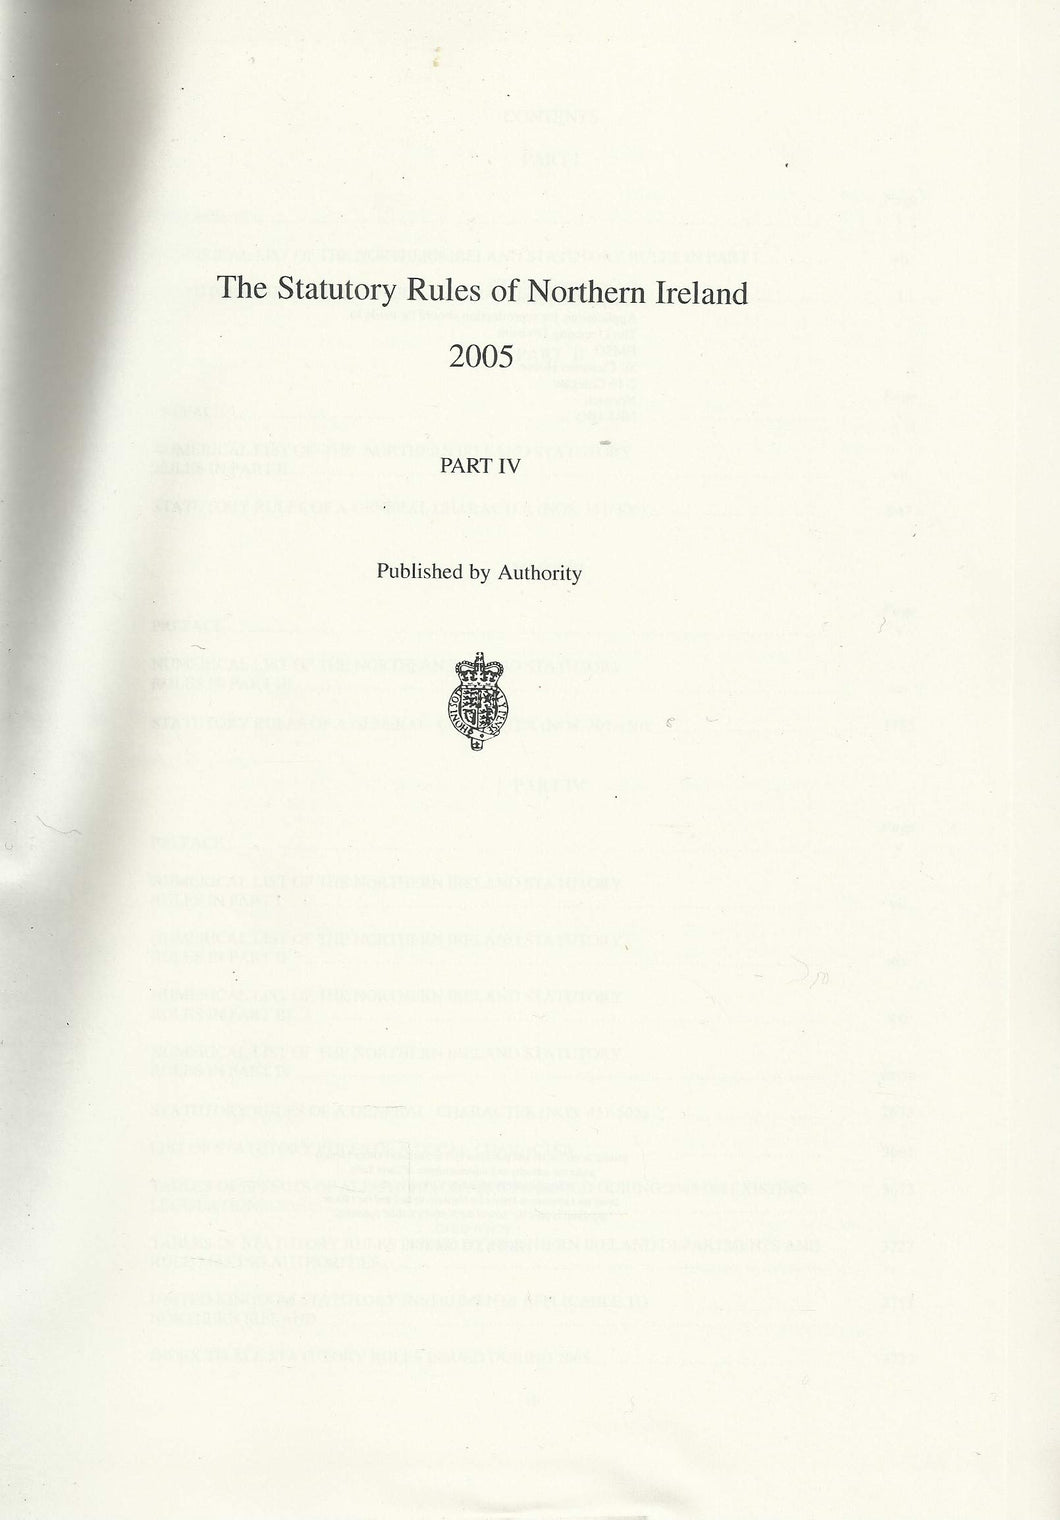 Northern Ireland Statutory Rules 2005, Part IV (Part 4) - The Statutory Rules of Northern Ireland